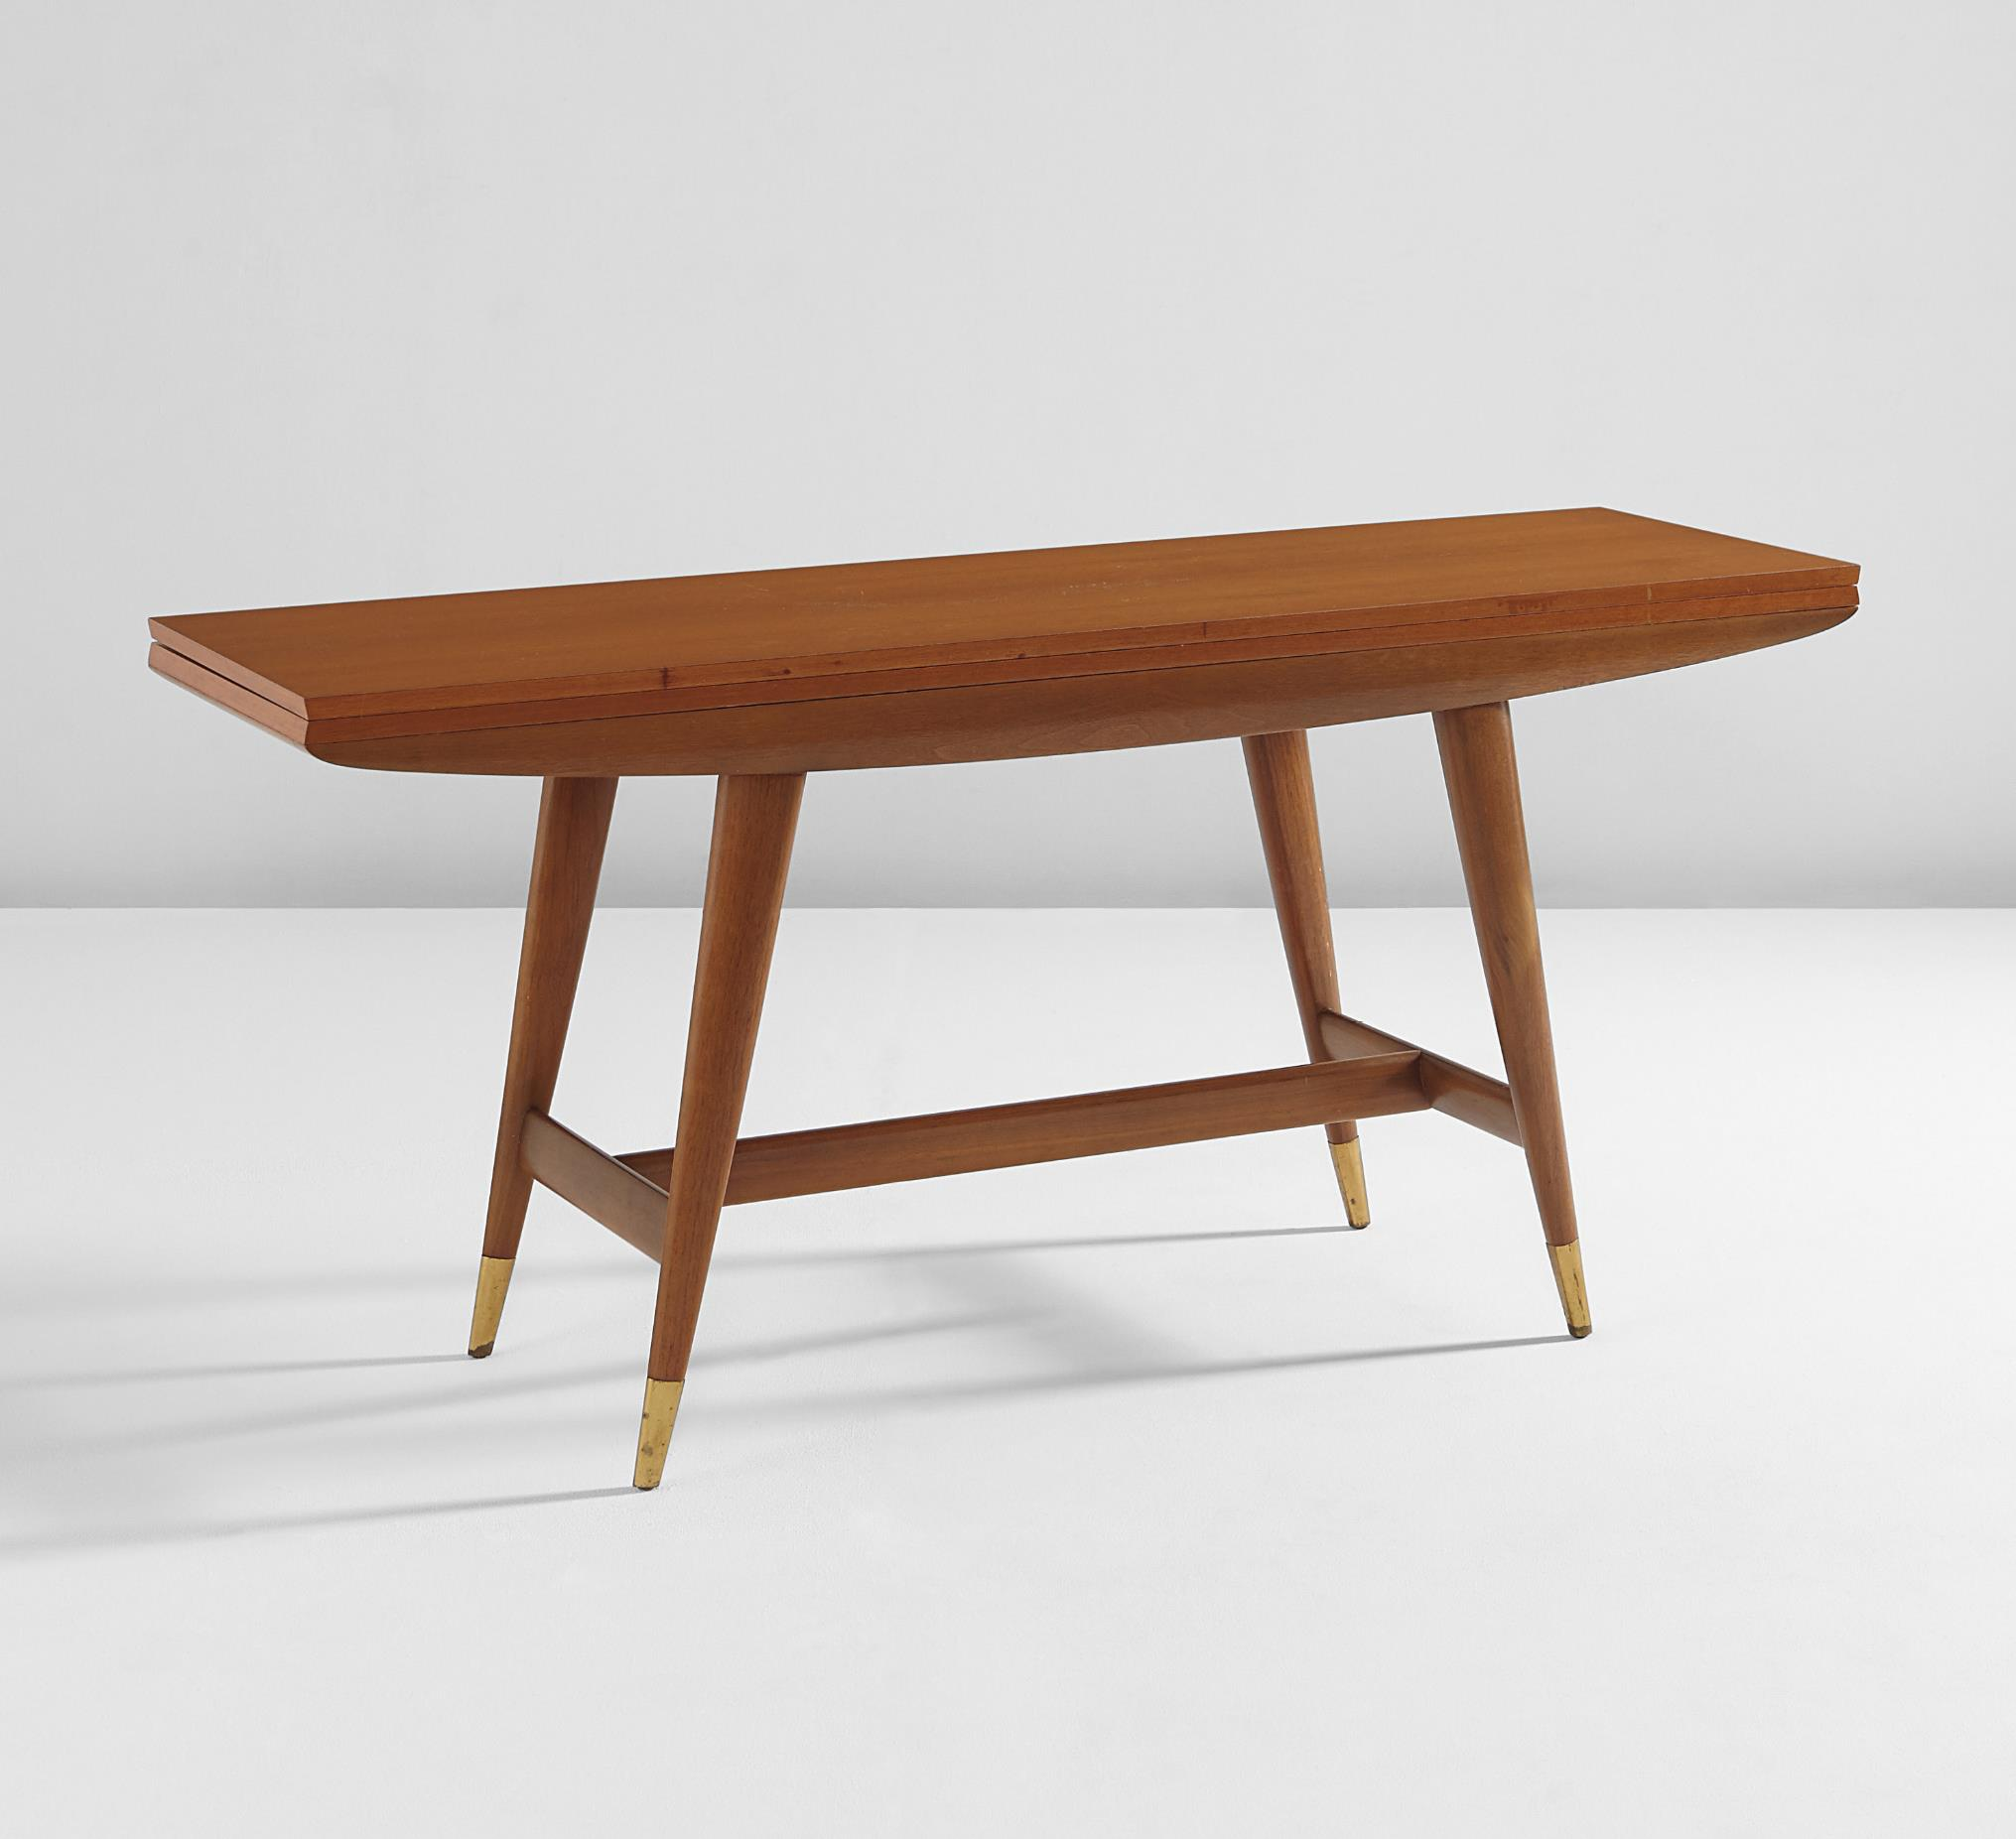 Gio Ponti Extendable console table, model no. 2134, 1950s